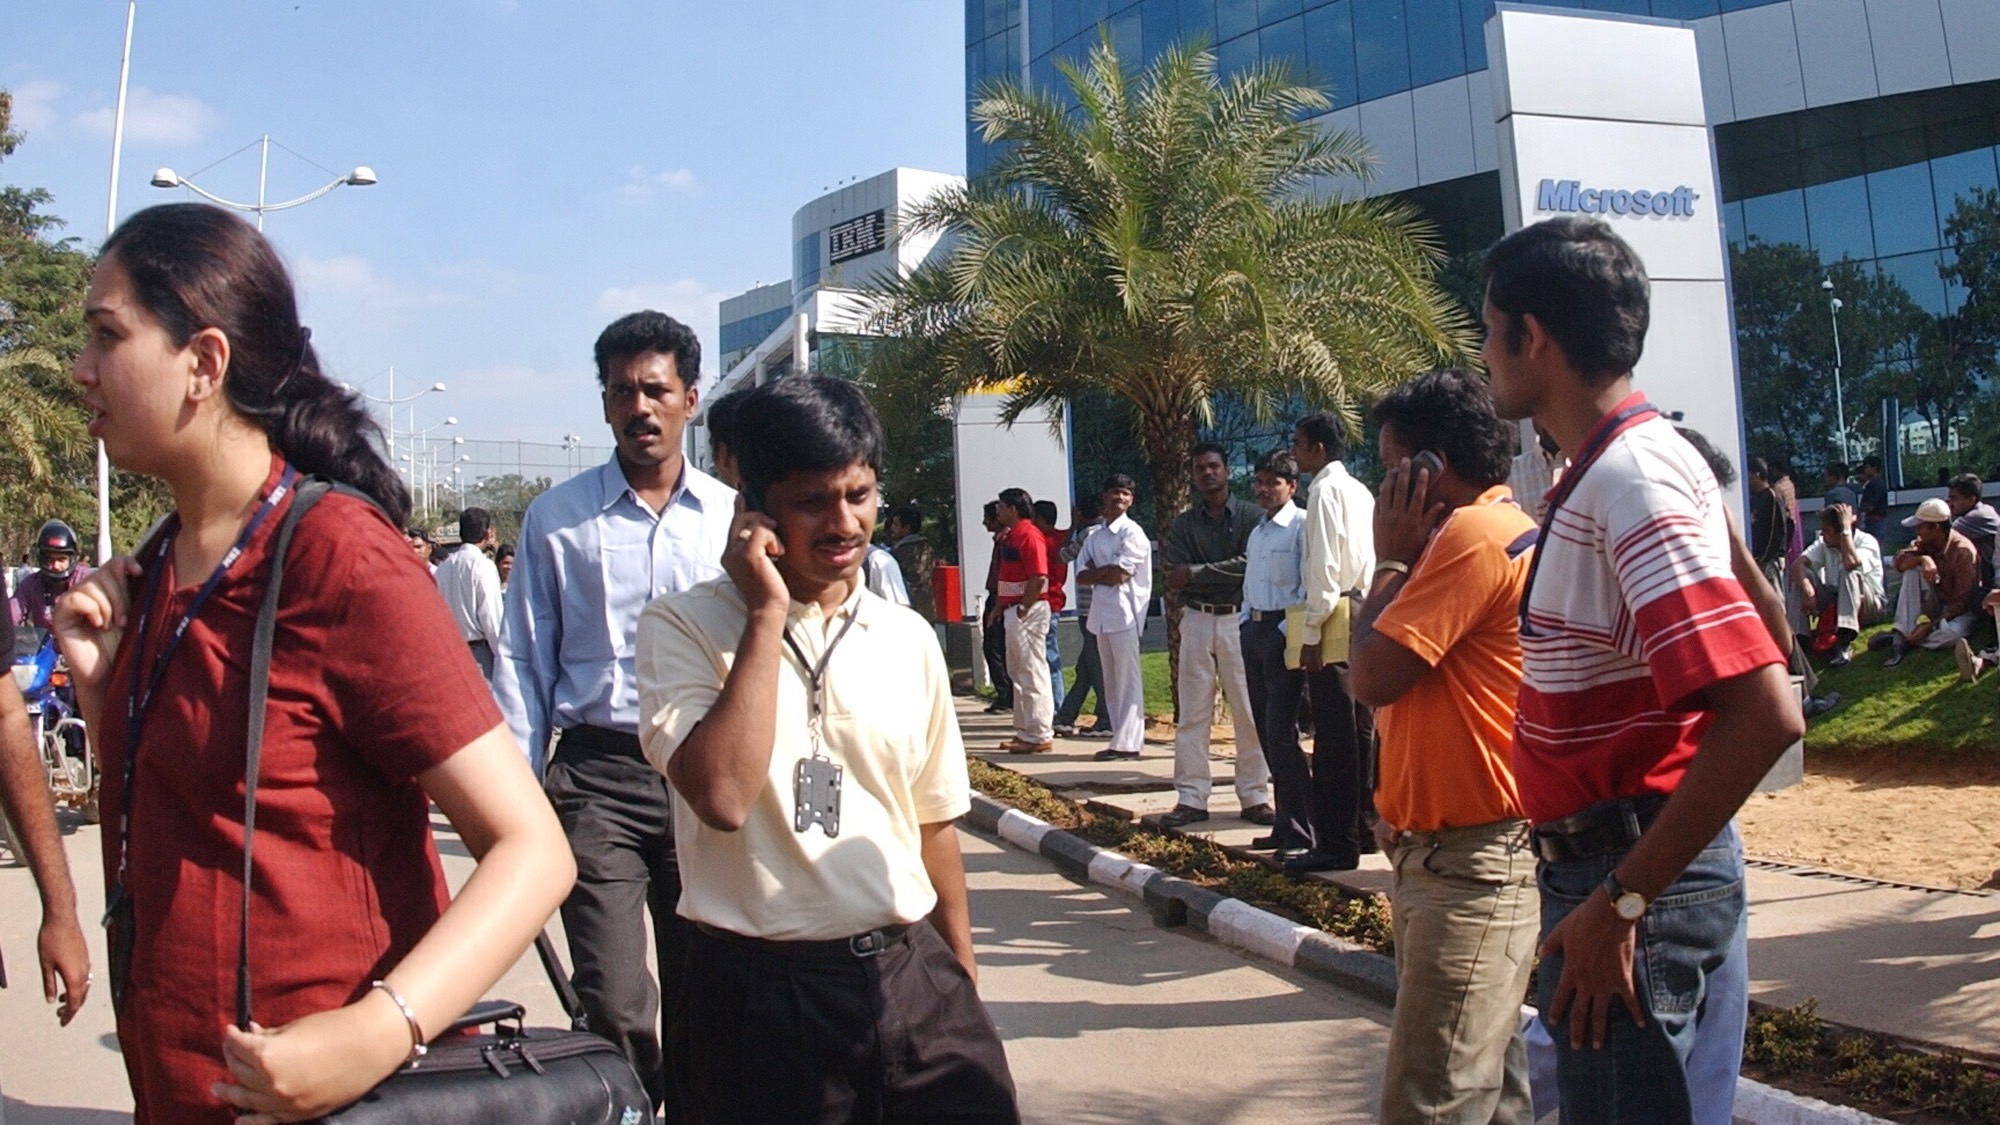 Anxious workers leave a building that has offices of international companies like Microsoft and IBM, after an anonymous caller informed about the presence of a bomb which later turned out to be a false, at Bangalore, India, Friday Dec. 30, 2005. High-tech firms, the Indian space agency and nuclear facilities stepped up security Friday after an unknown group threatened suicide attacks against a top politician and New Year's revelers in India's technology hub, officials said.  (AP Photo)